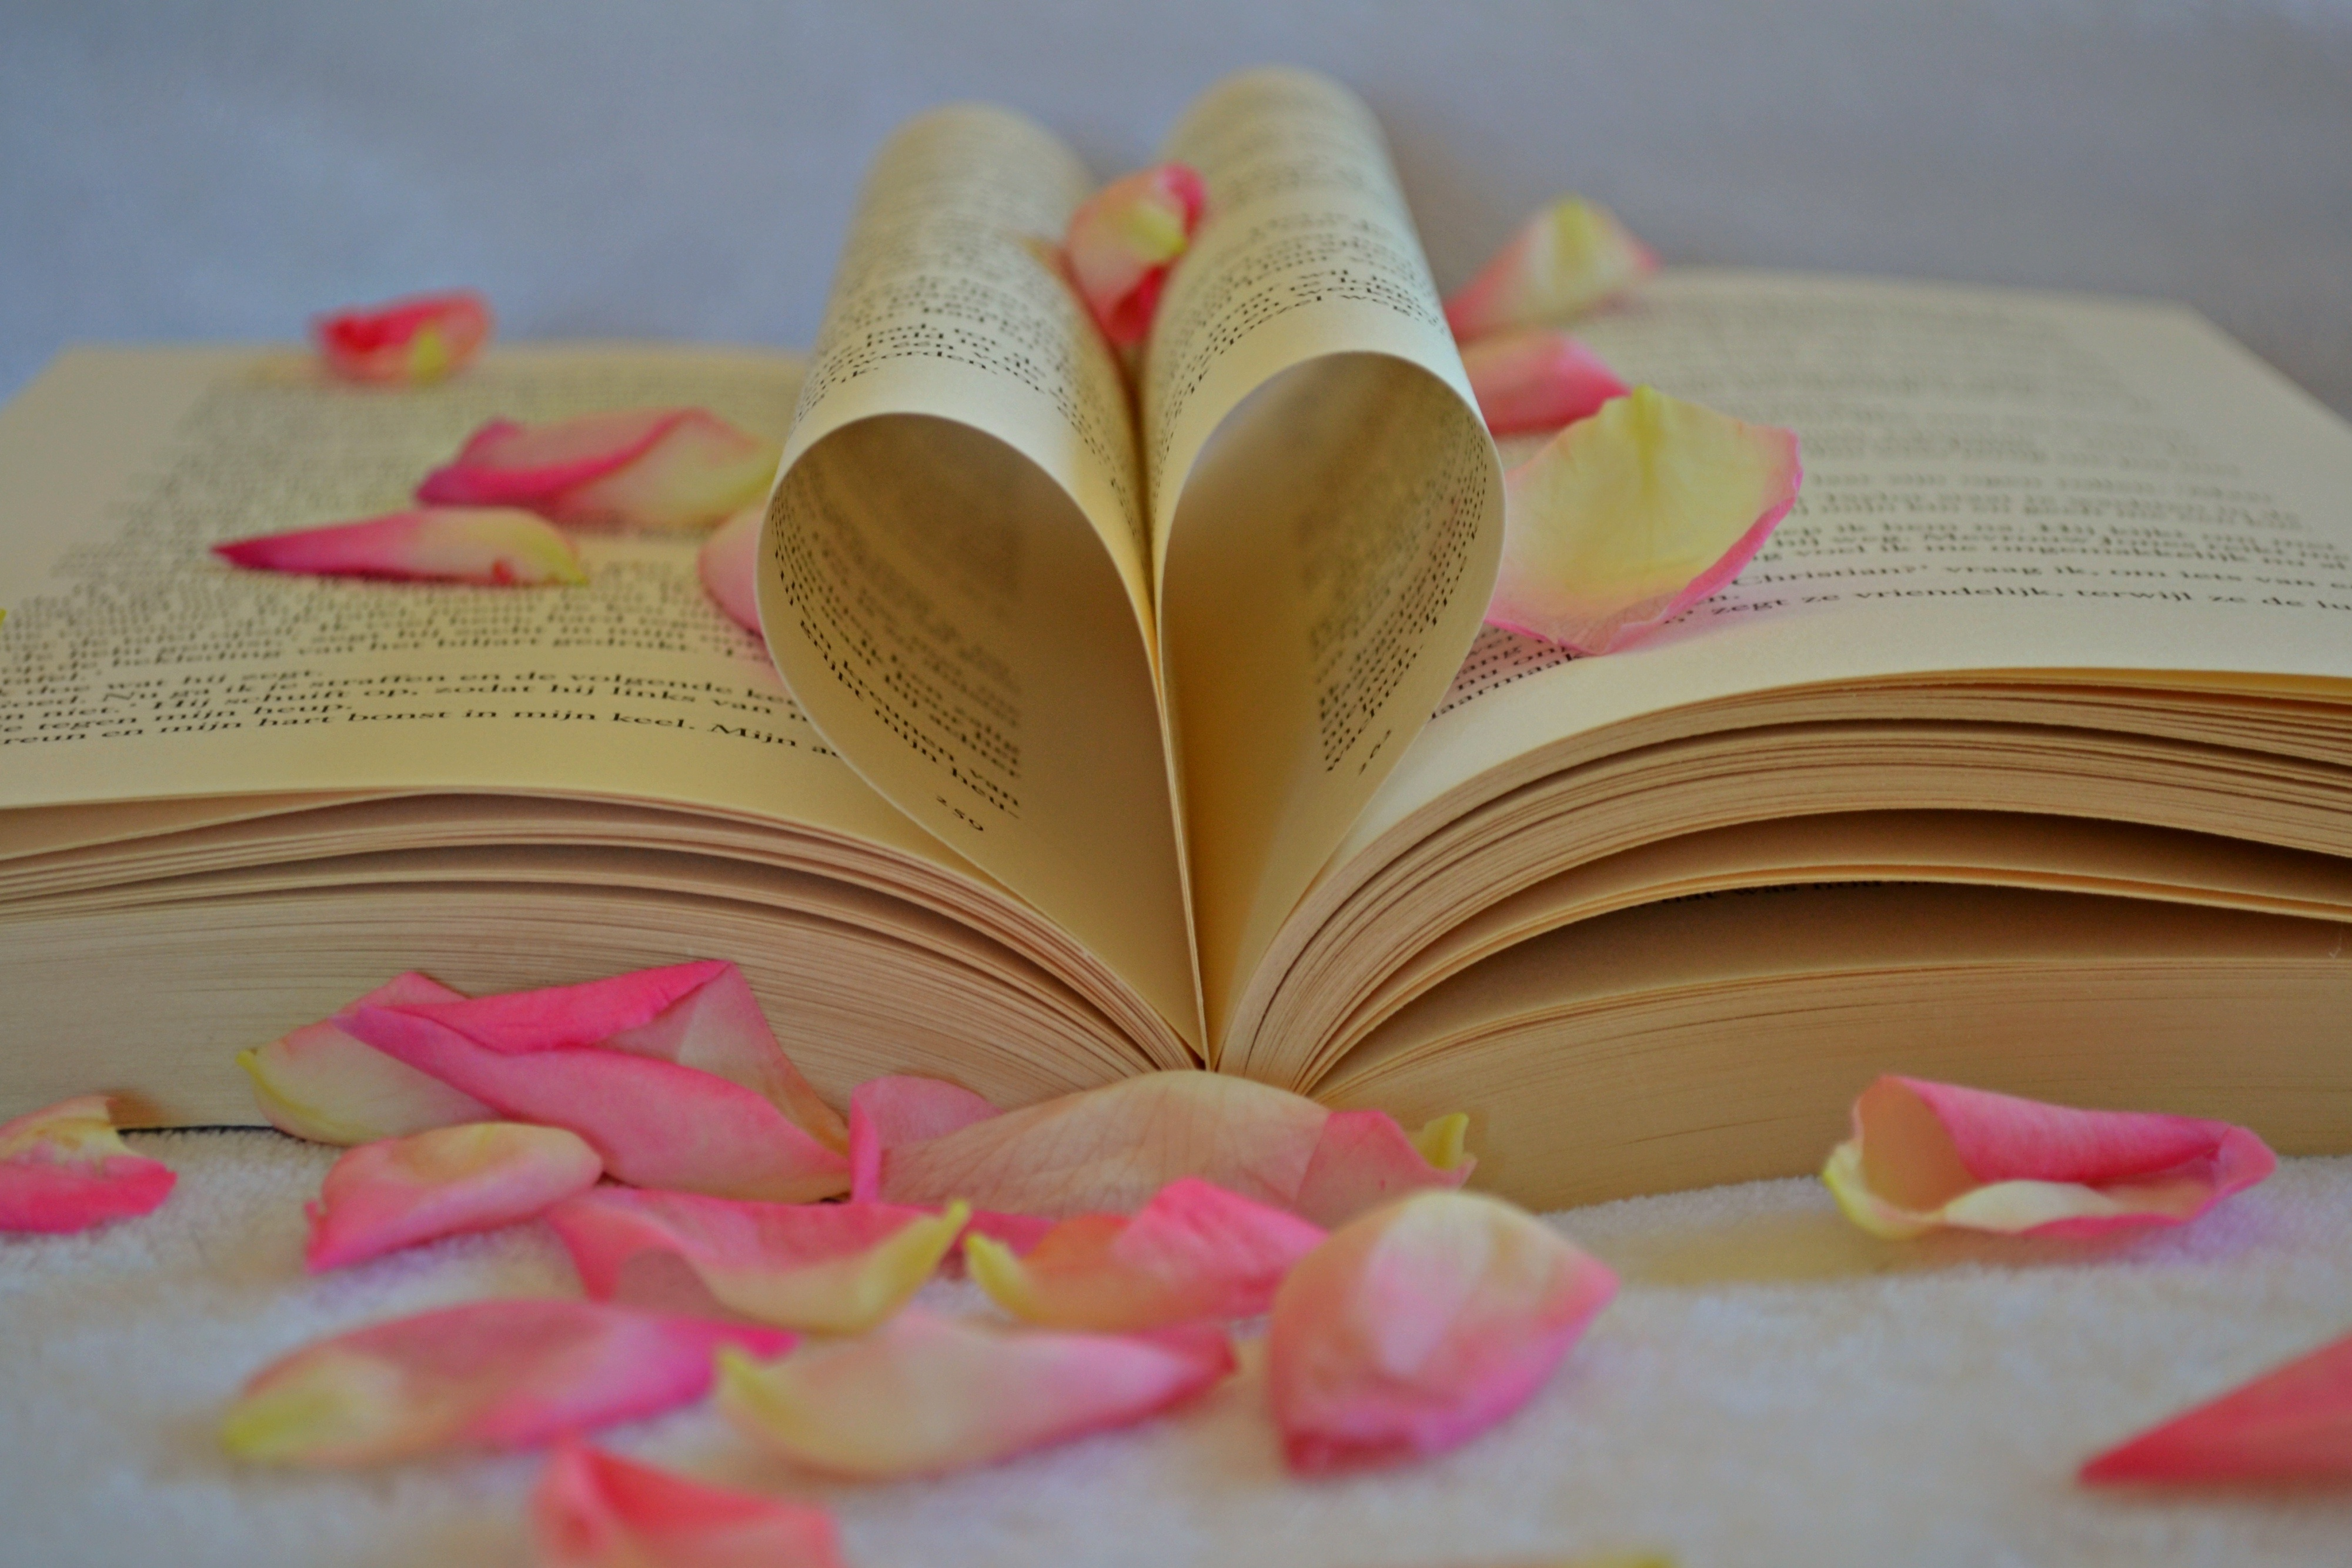 Flower Petals on Book